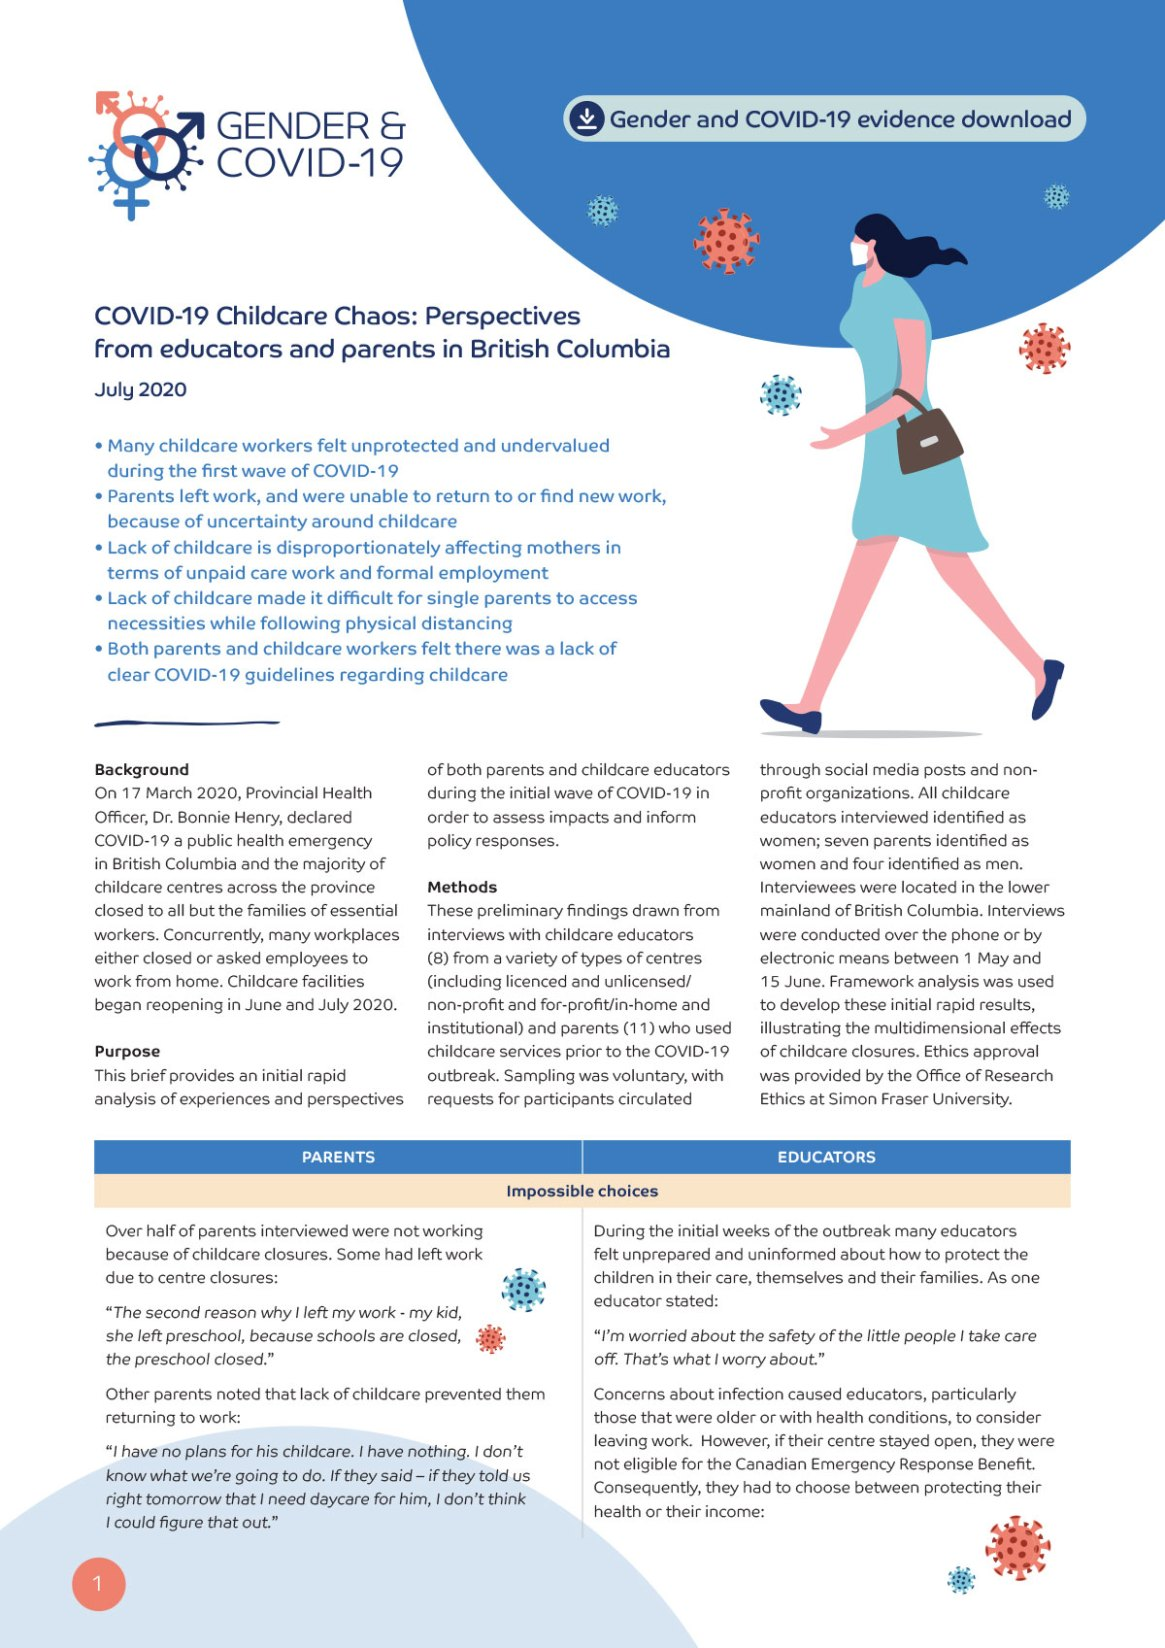 COVID-19 Childcare Chaos: Perspectives from educators and parents in British Columbia